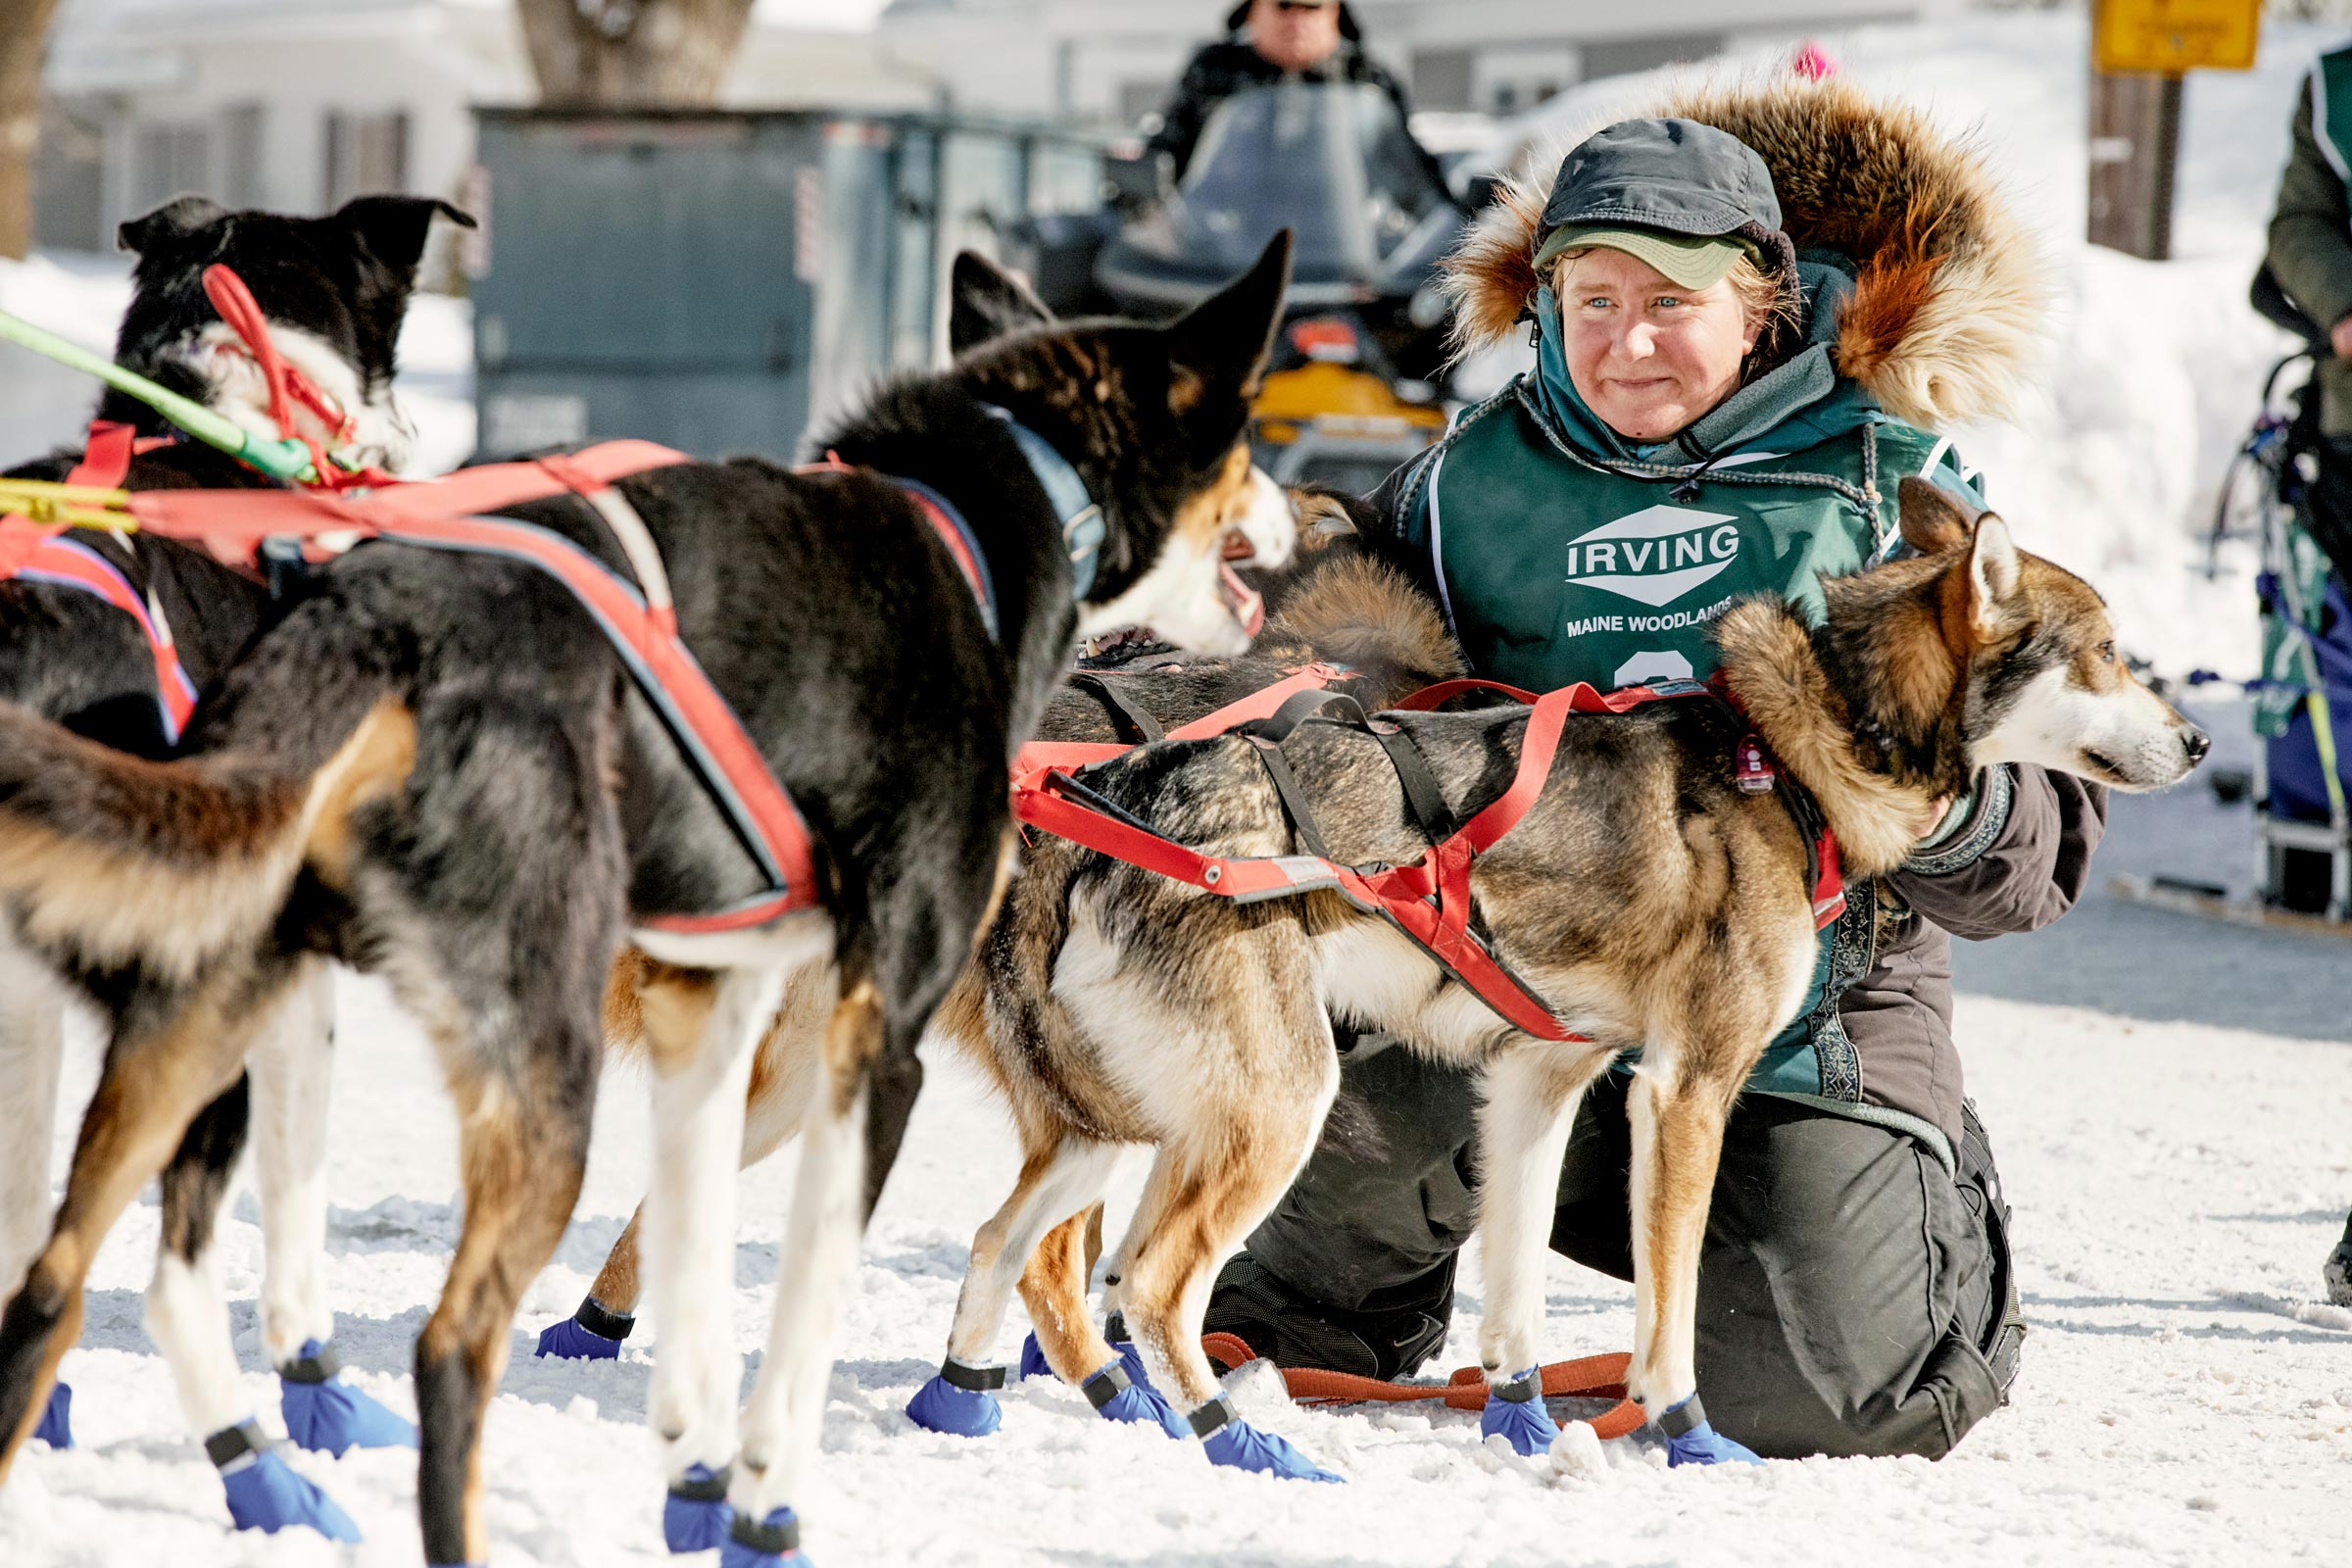 M_WilsonCan_AM-Dog-Sled00020